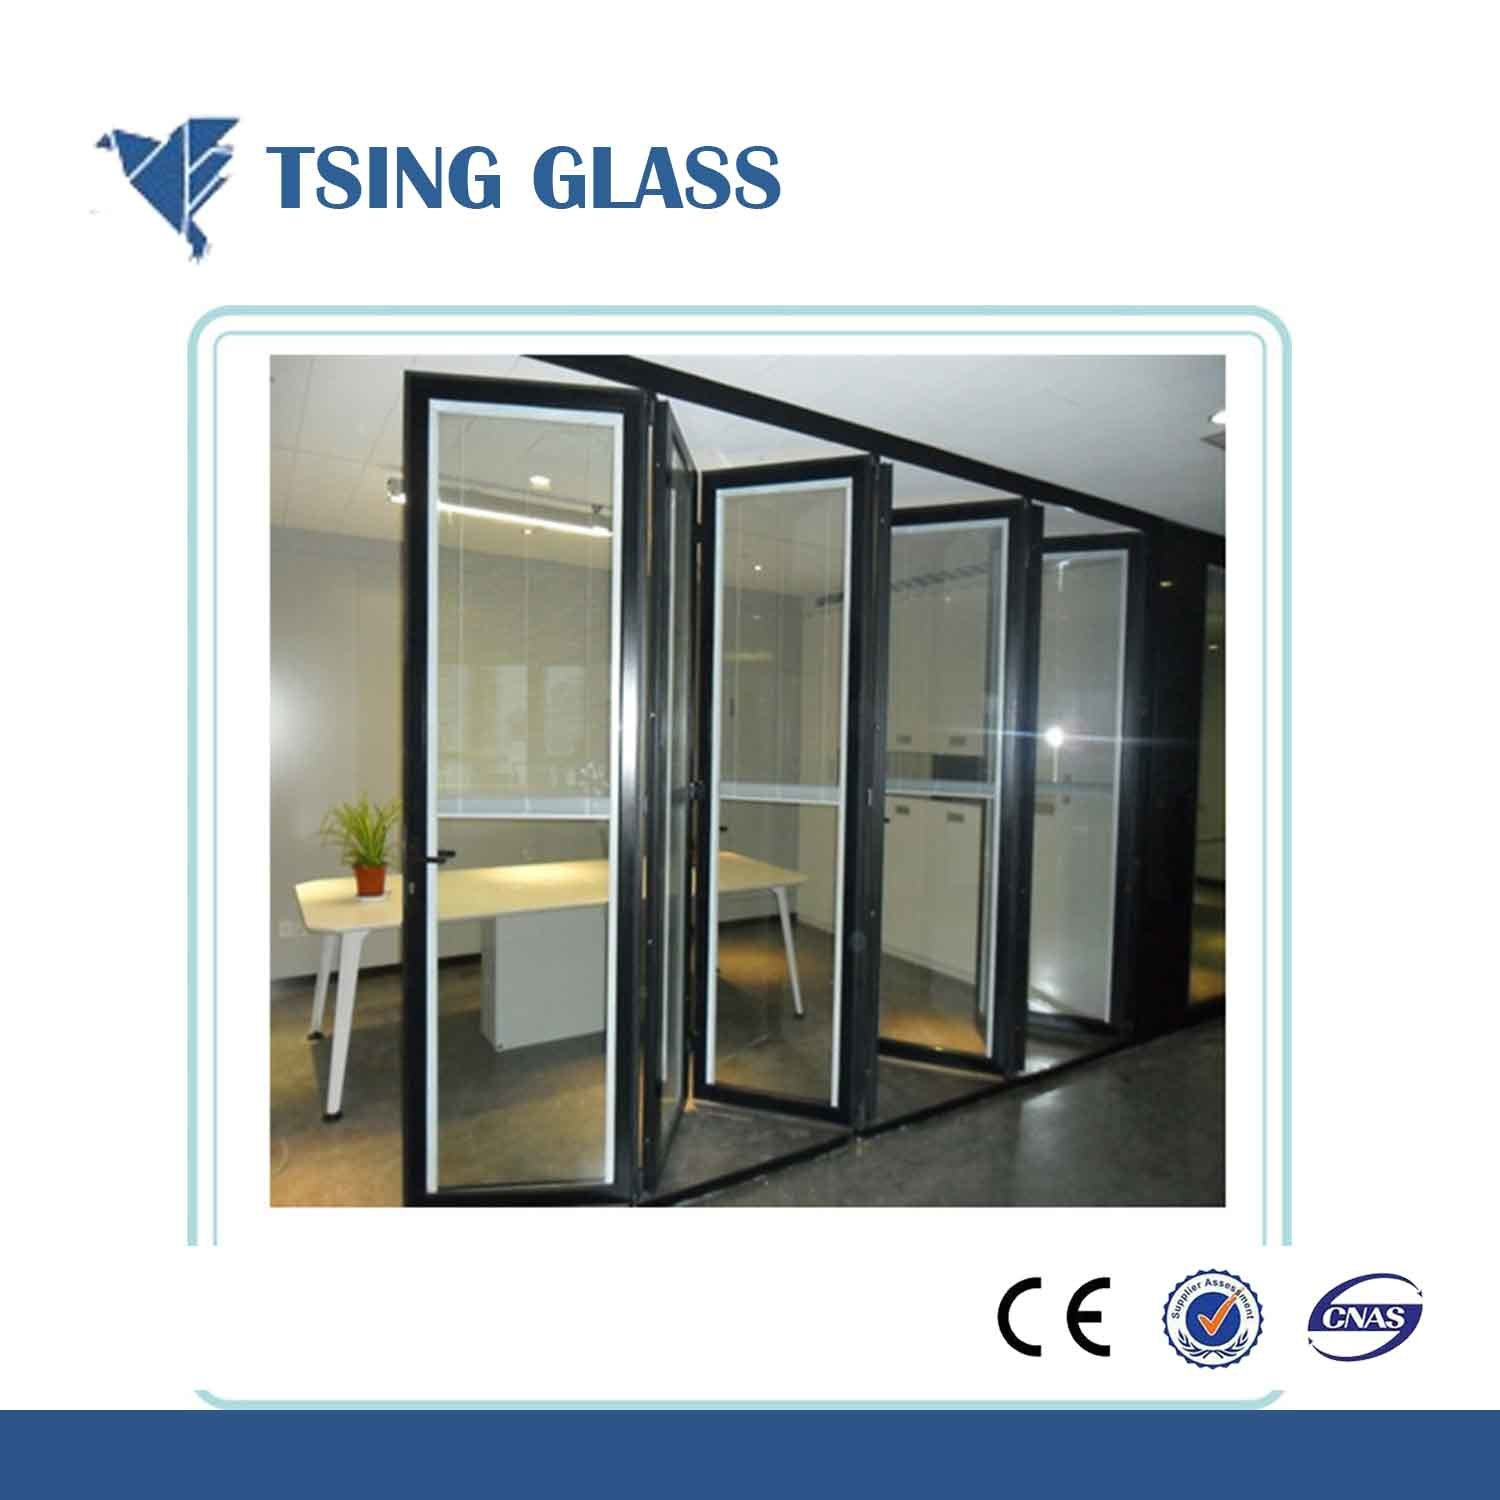 China Insulating Glass Insulated Glass Hollow Glass For Windows